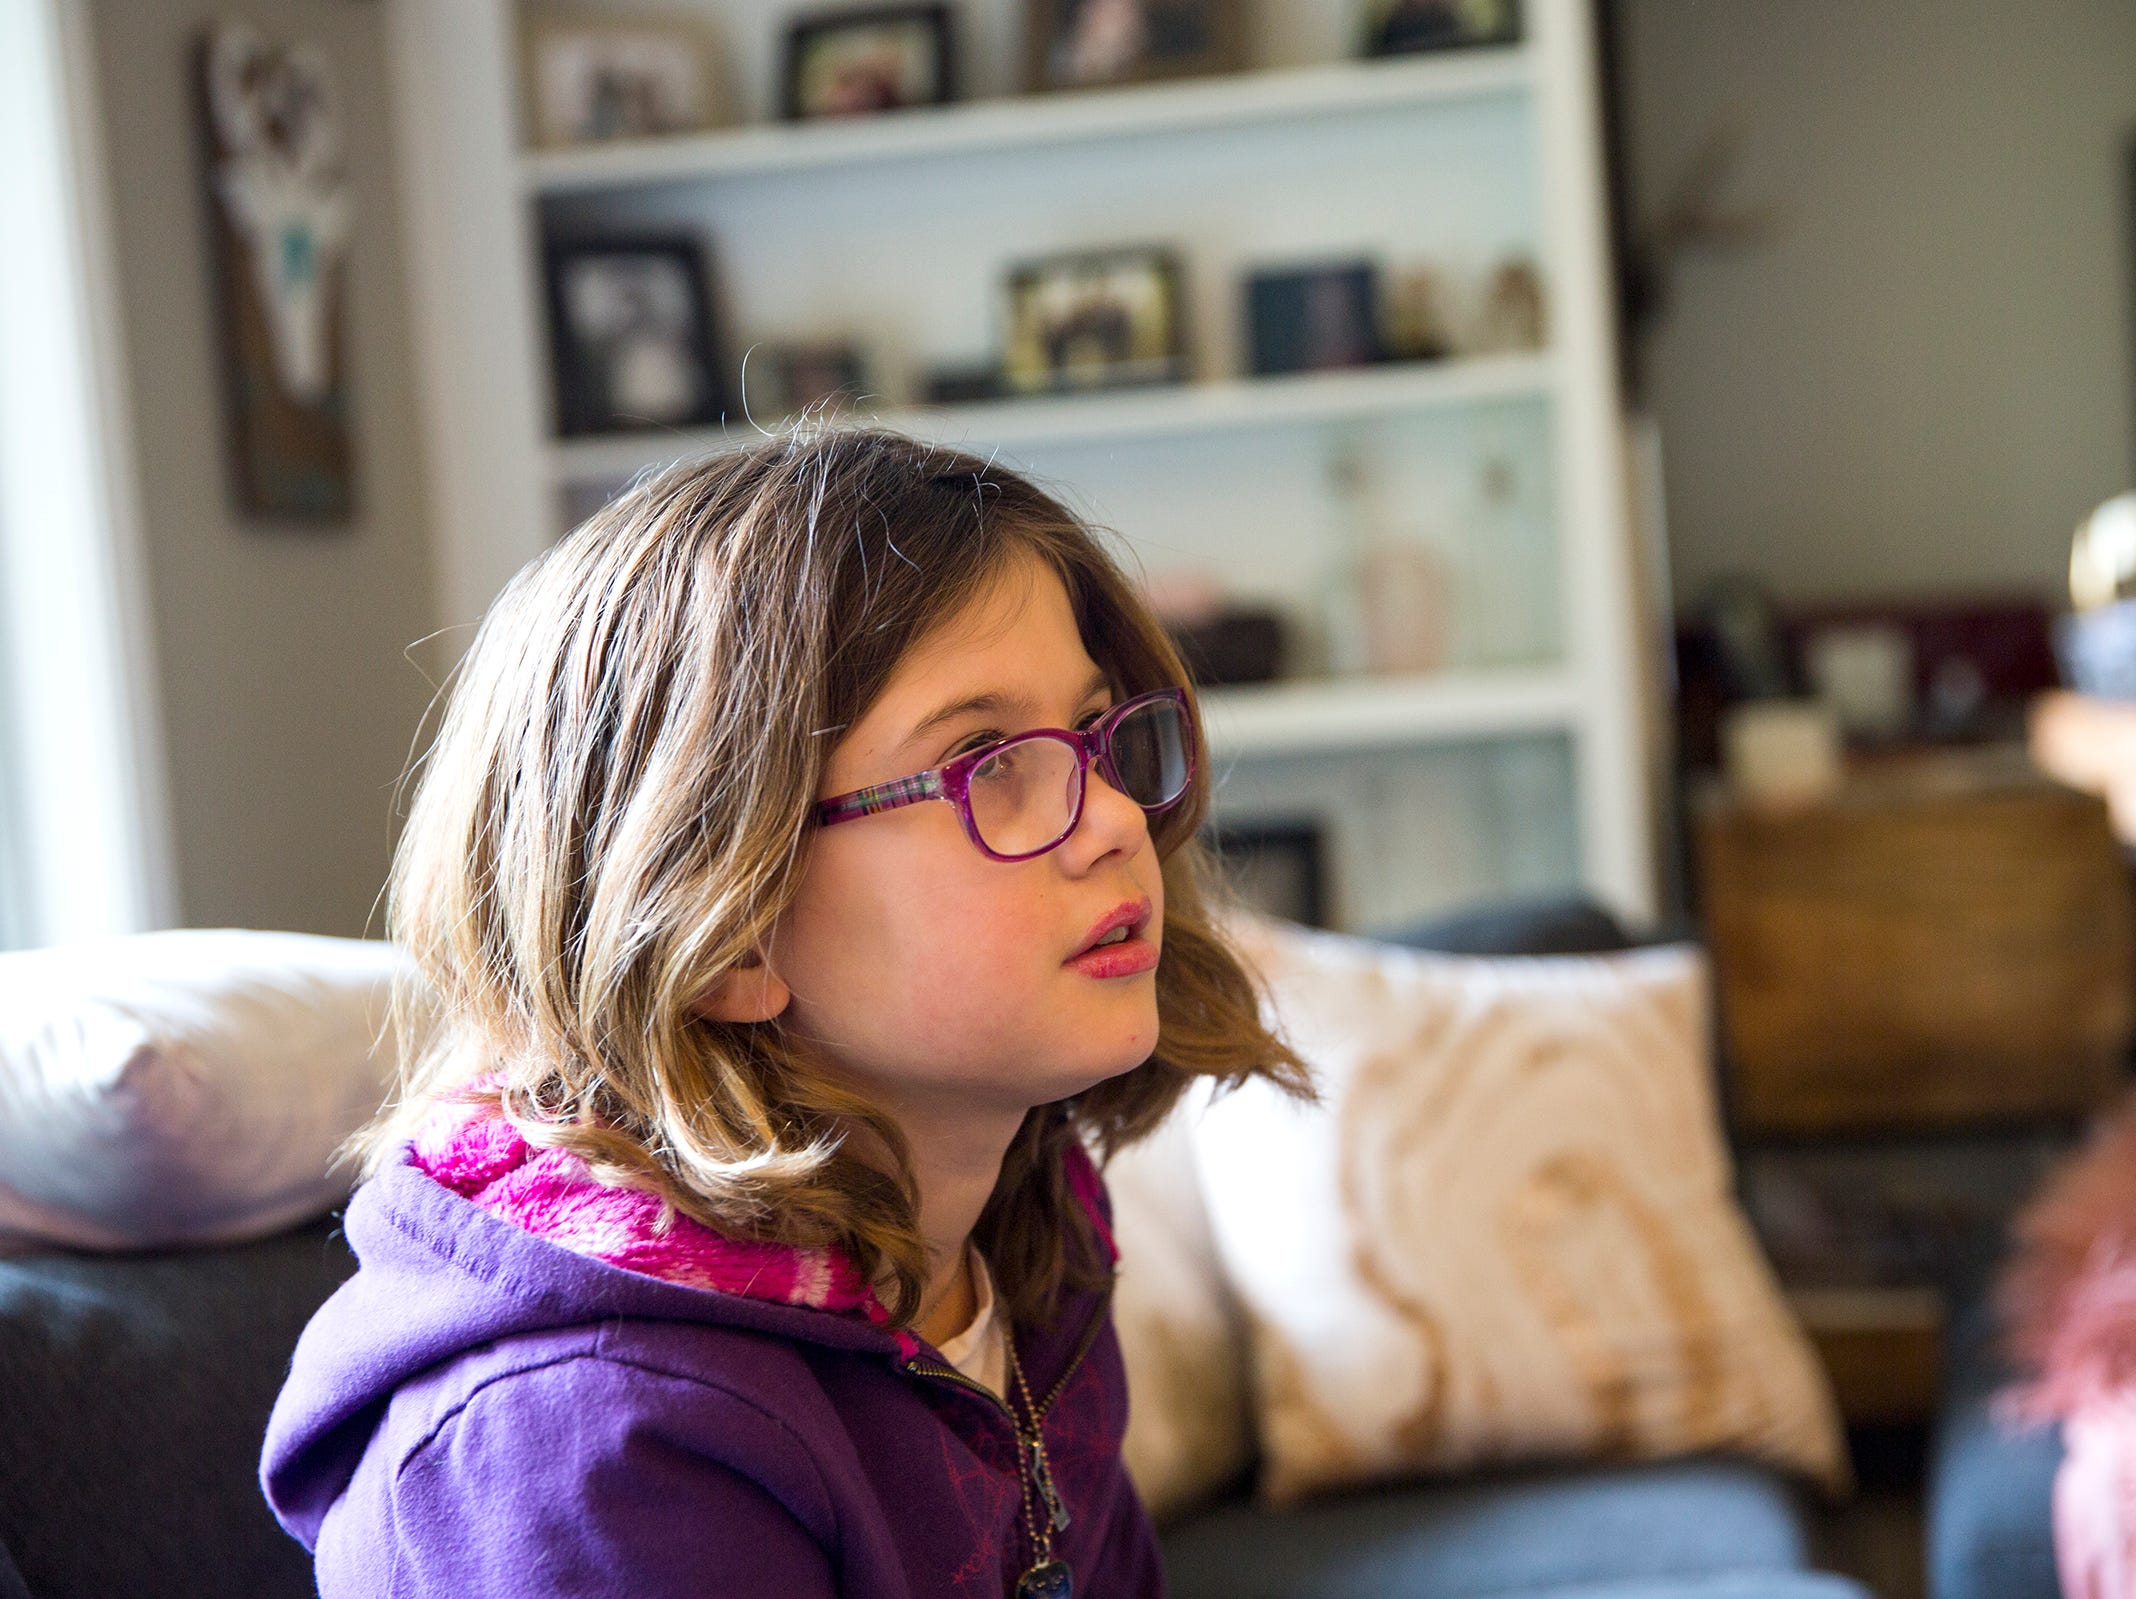 Haley Pollman, 9, is interviewed at her home in Salem on Saturday, Feb. 23, 2019. Haley has Batten disease, a rare disorder of the nervous system.